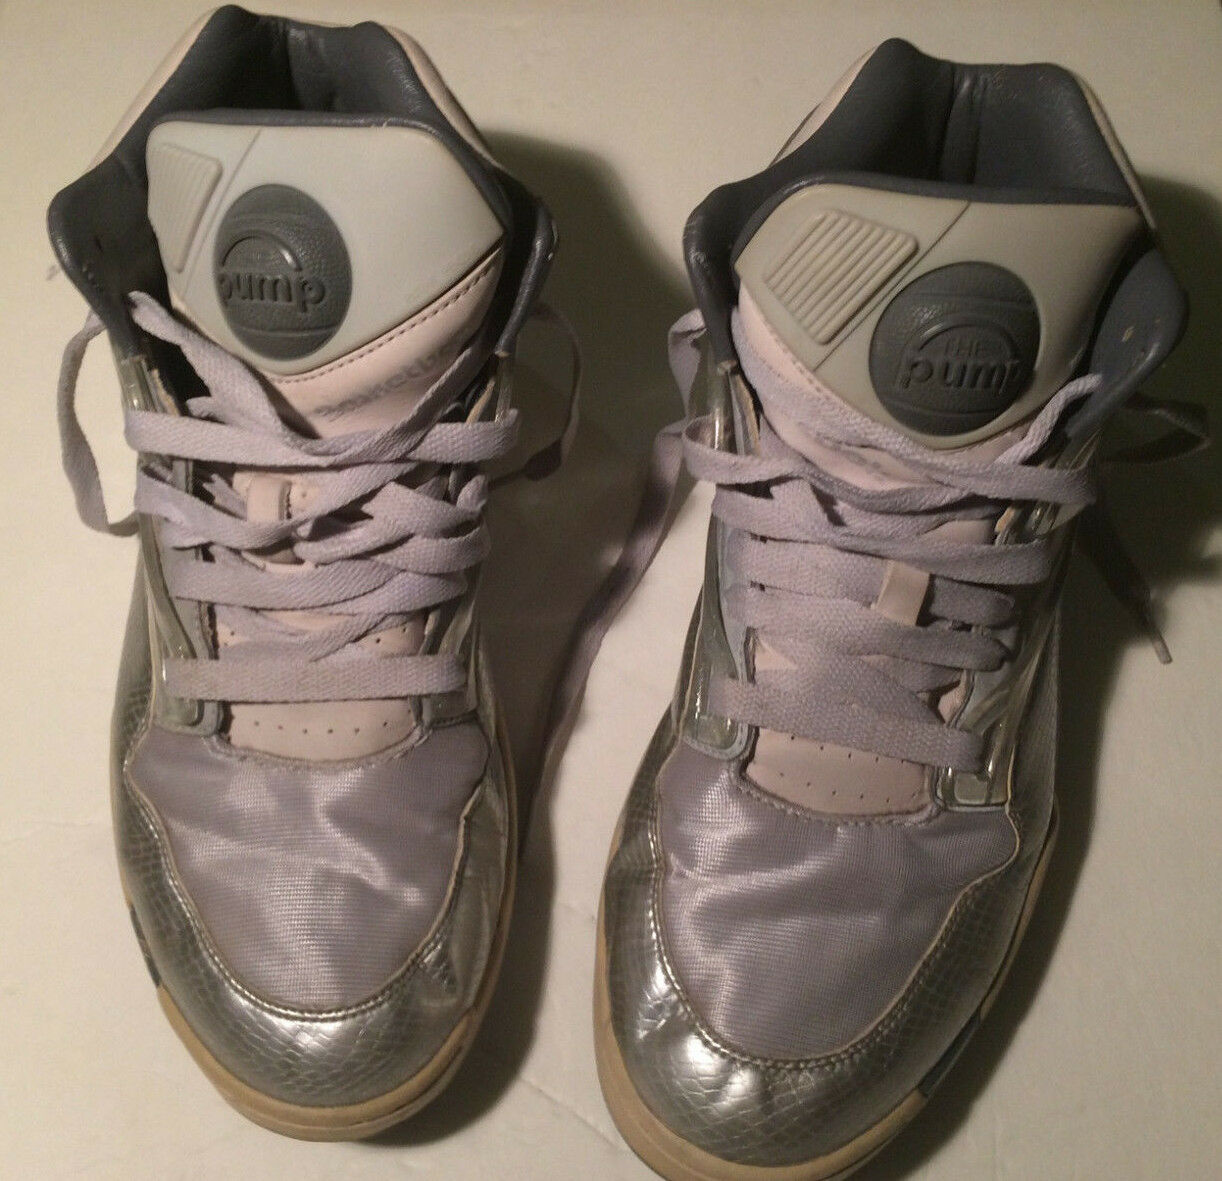 Limited Edition Reebok Pump Omni Lite Audet Shoes- Size 12